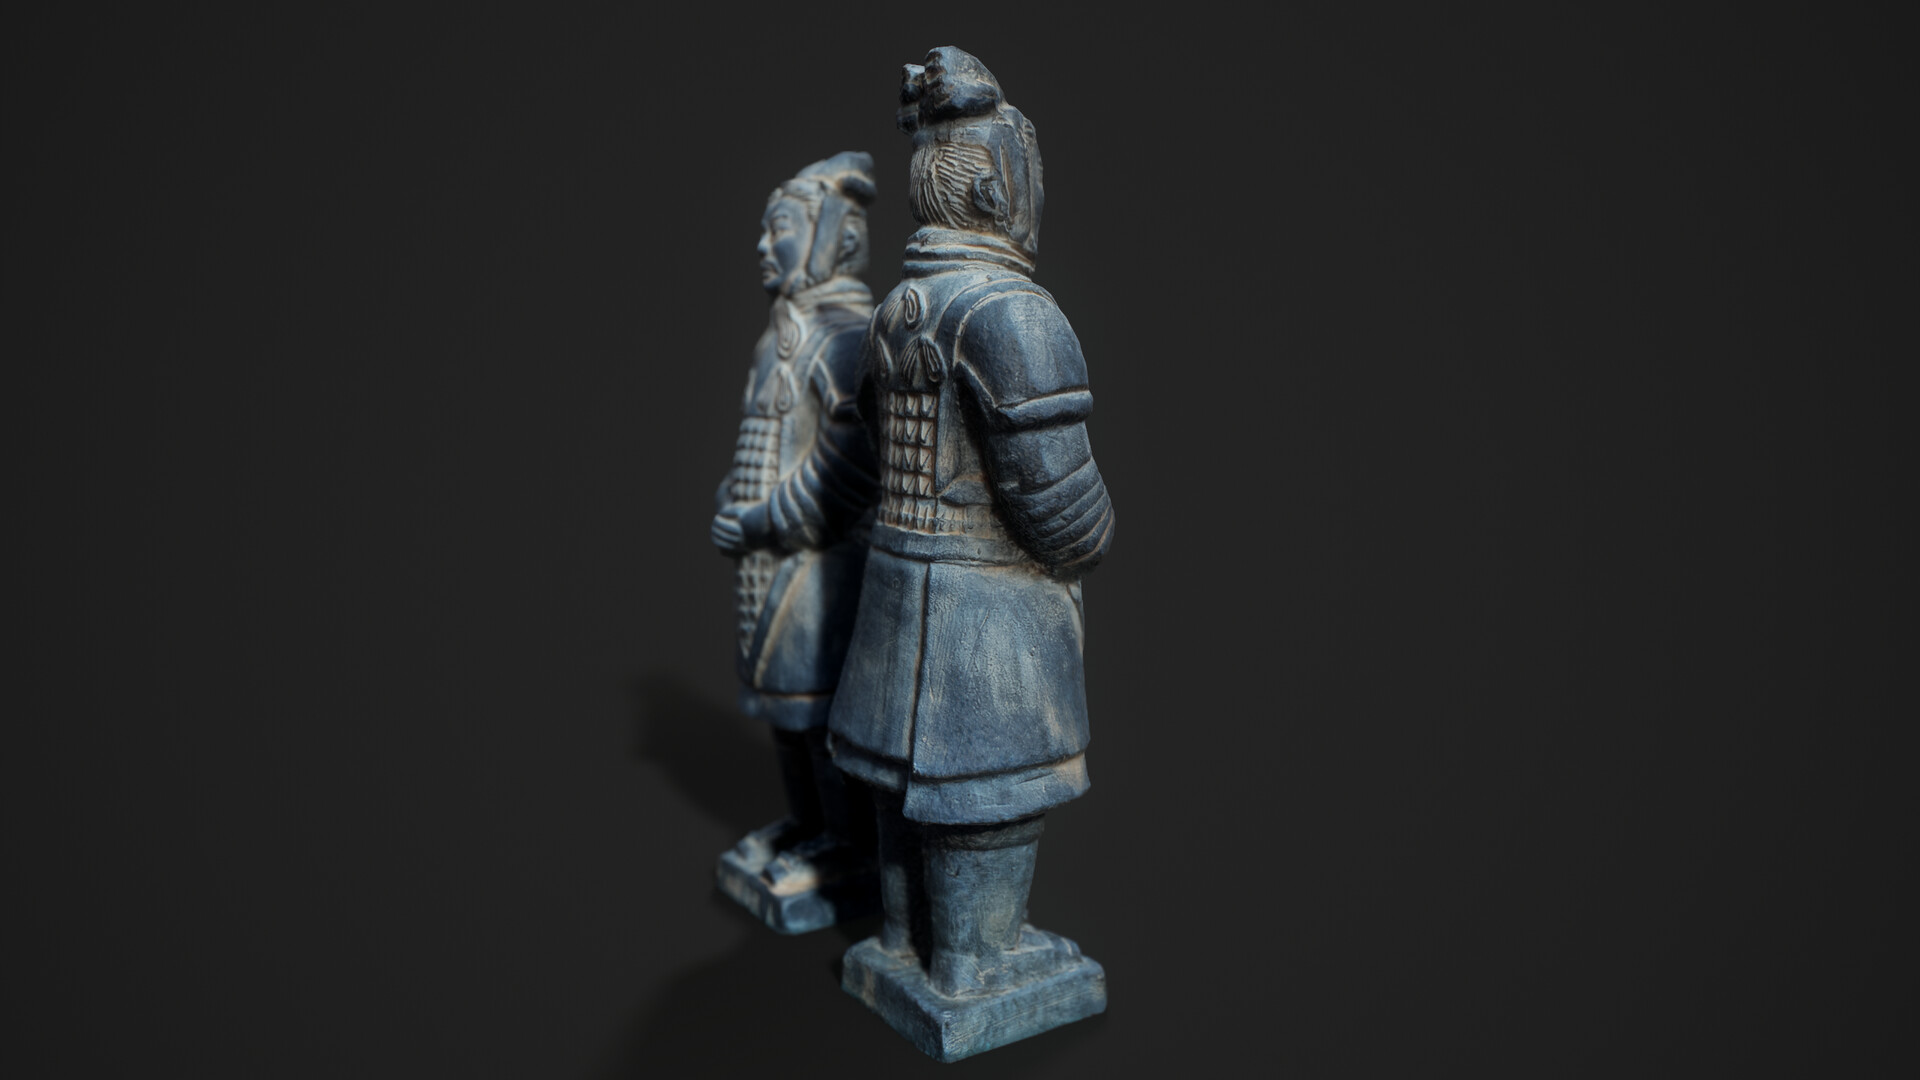 Paul foster photogrammetry statue 02